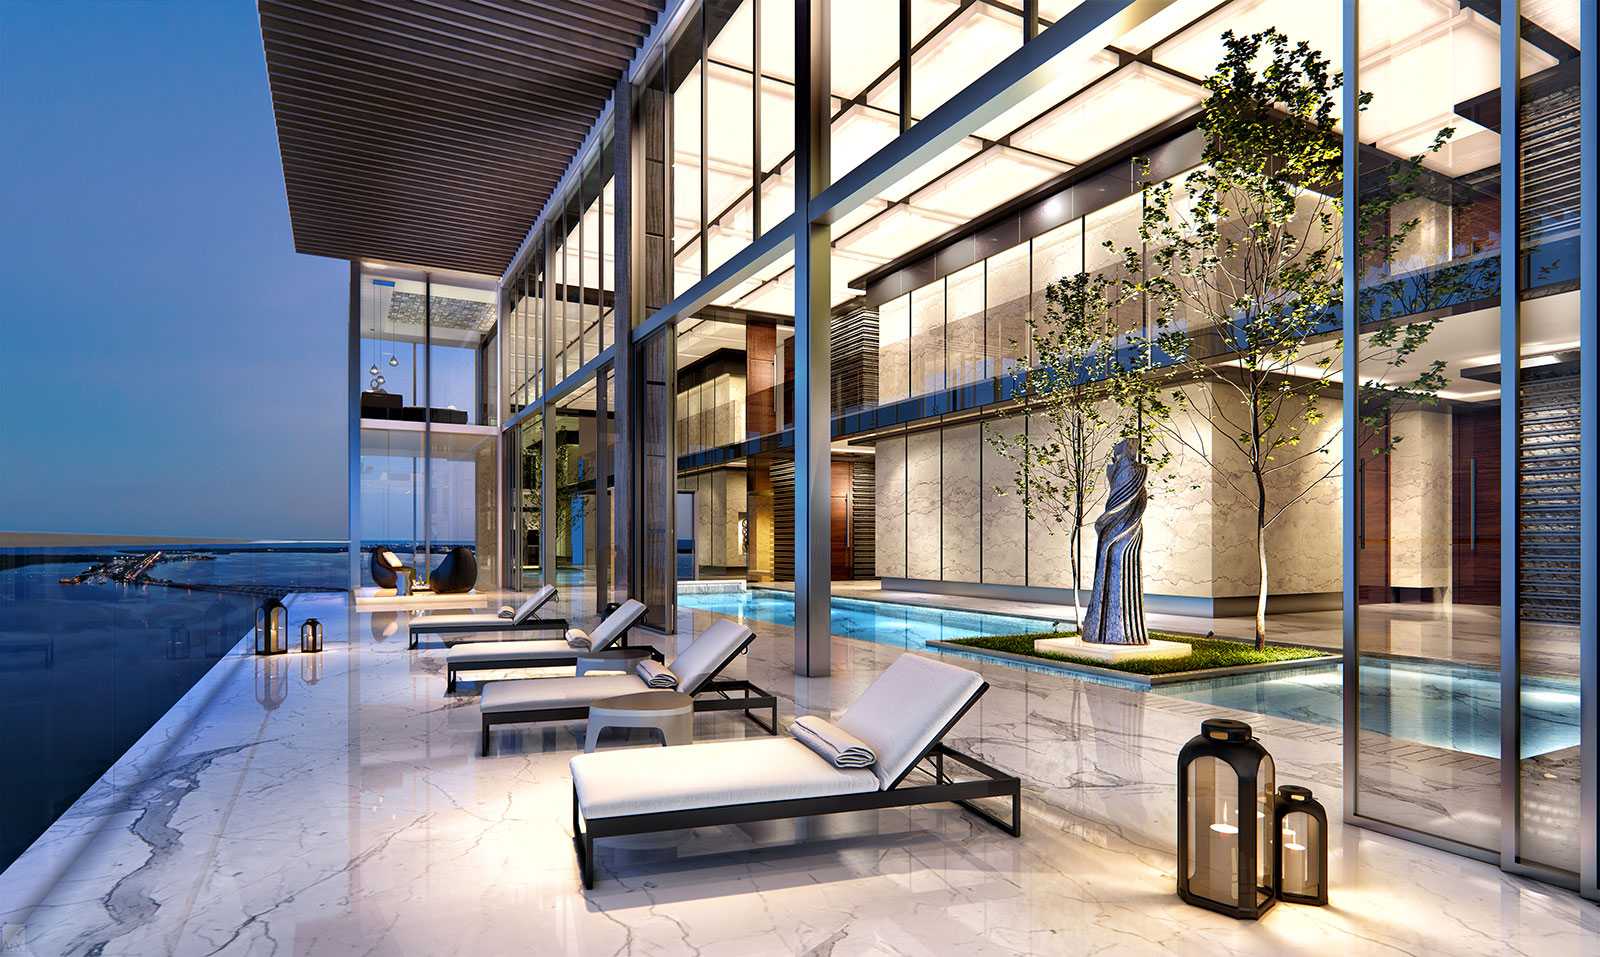 Echo Brickell penthouse indoor pool